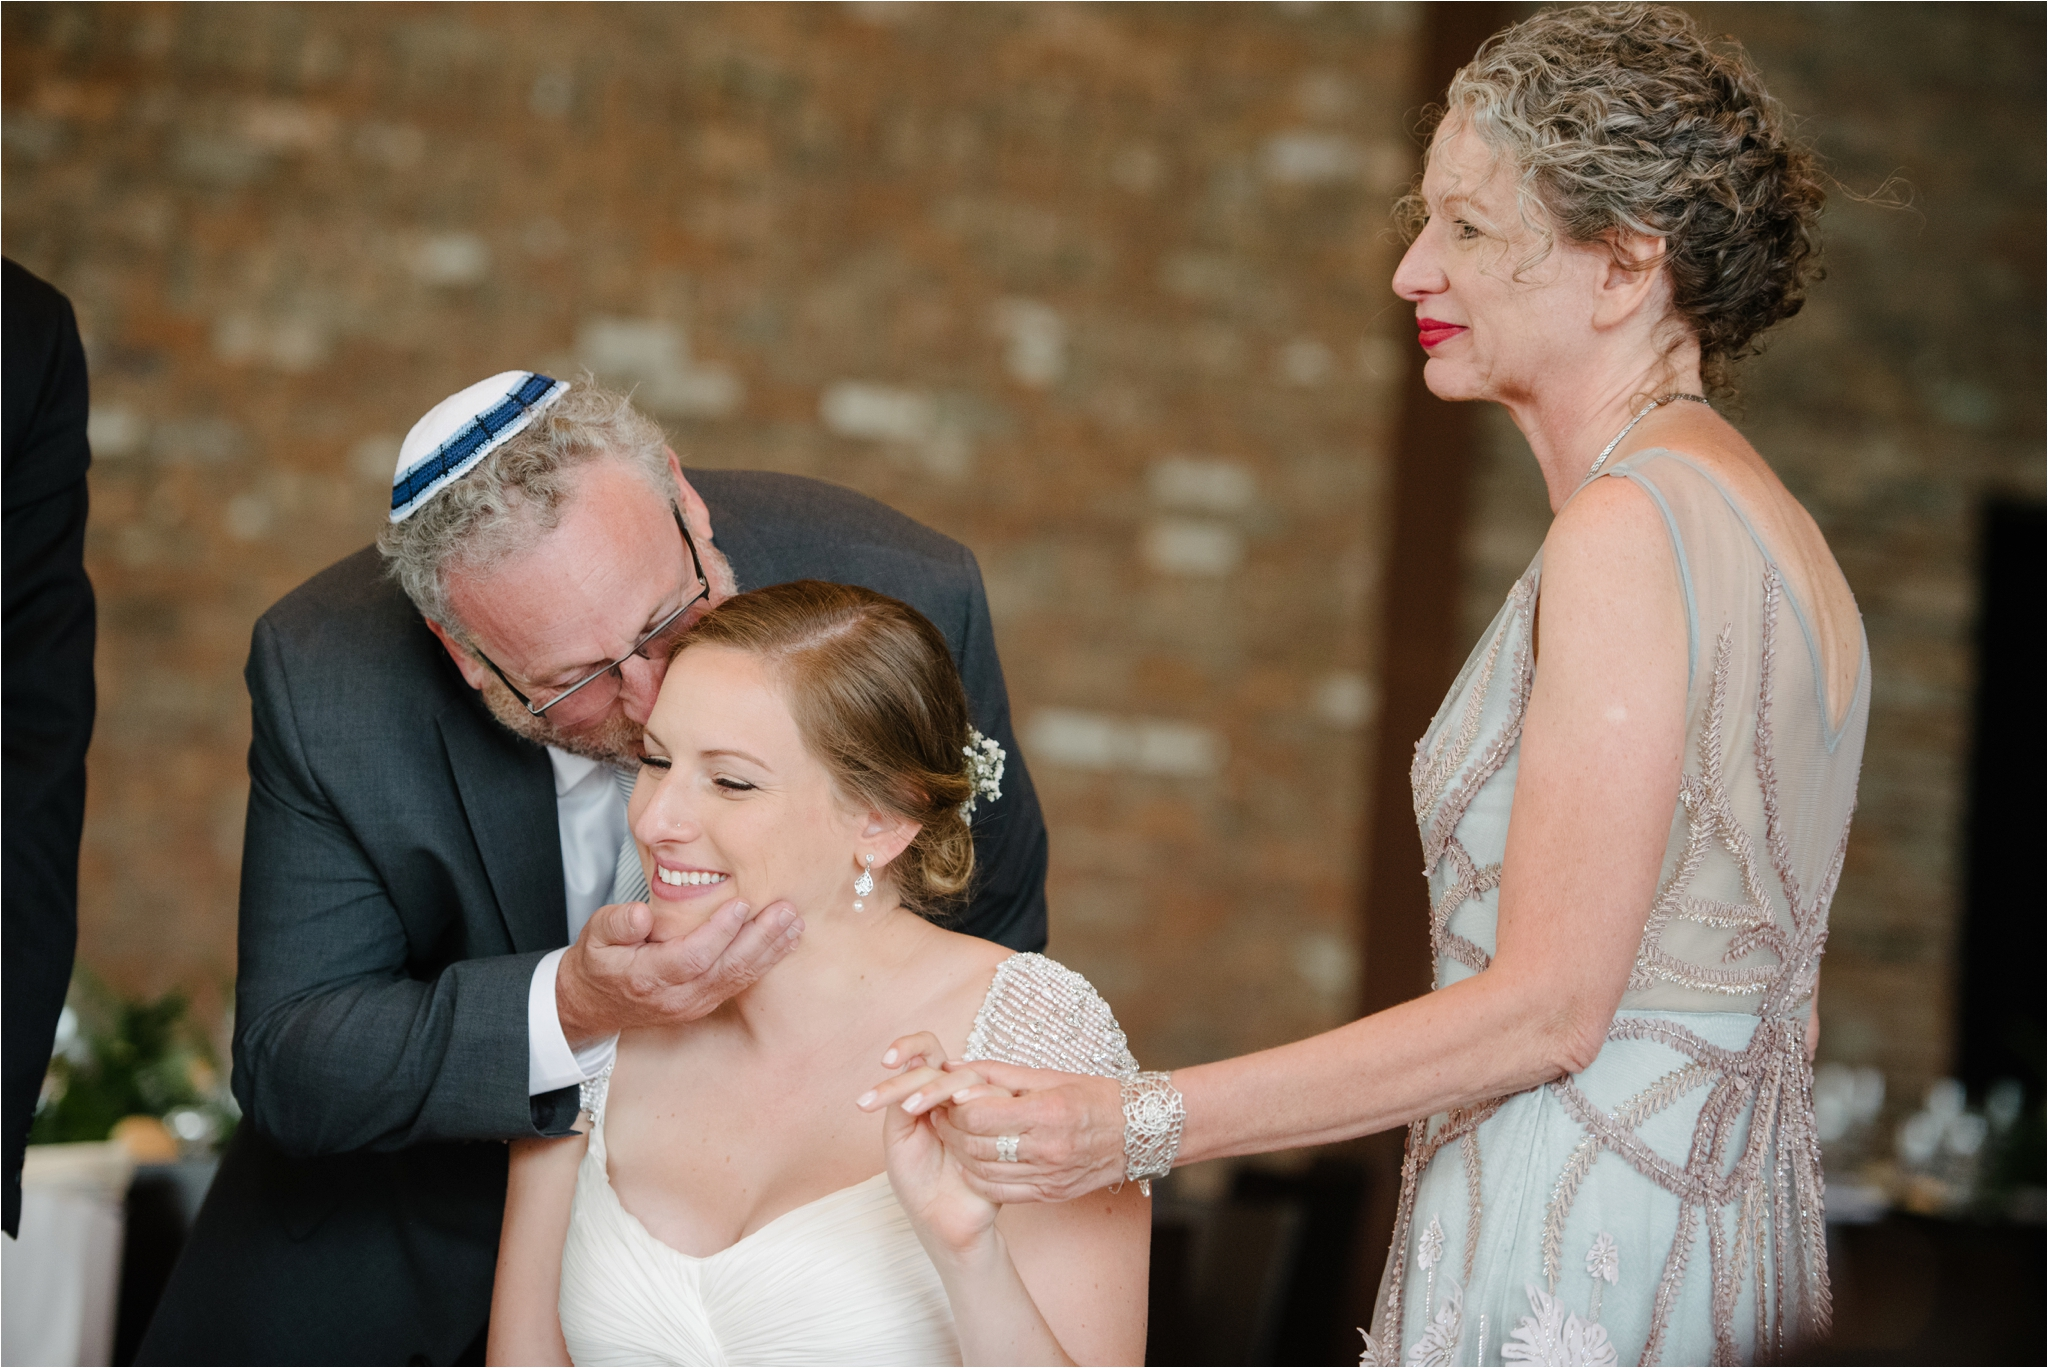 Roundhouse Beacon Falls Wedding, Brian Hatton Photography, Jewish wedding,